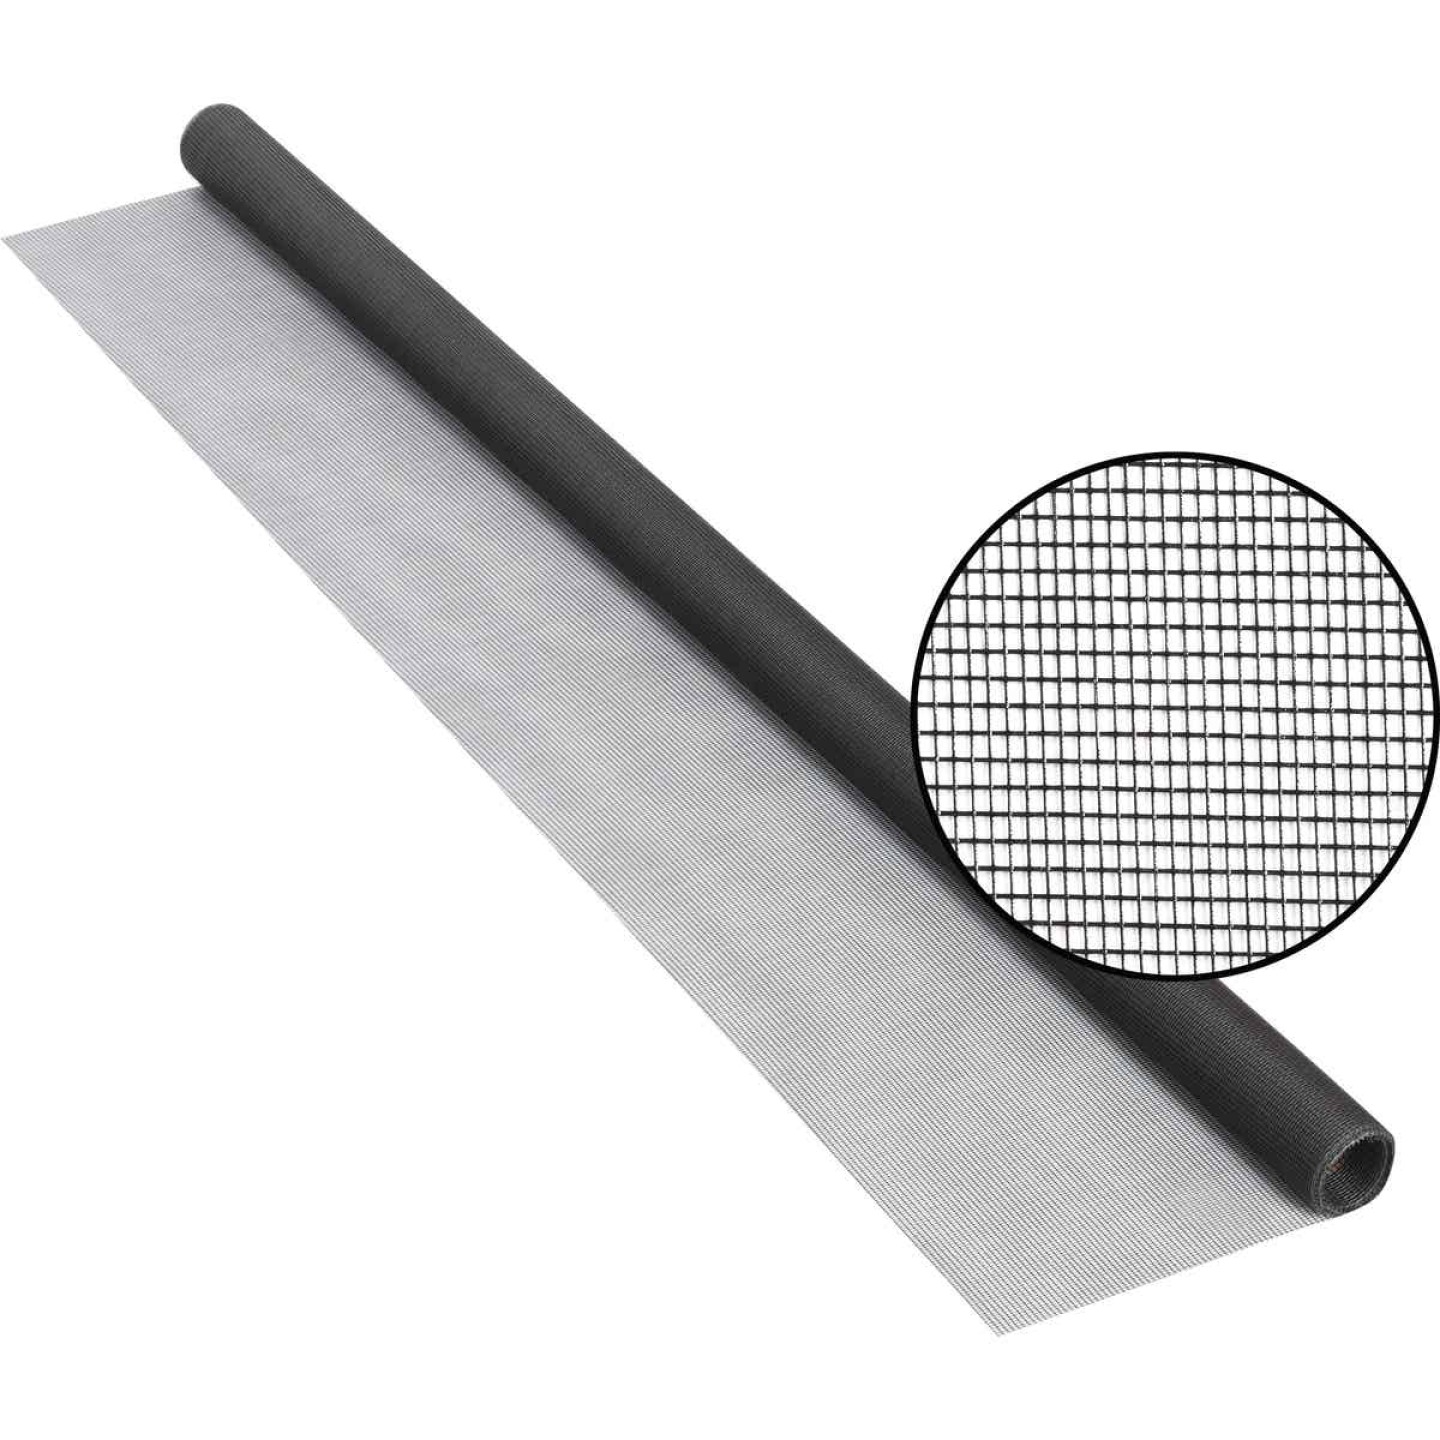 Phifer 48 In. x 84 In. Charcoal Fiberglass Screen Cloth Ready Rolls Image 1